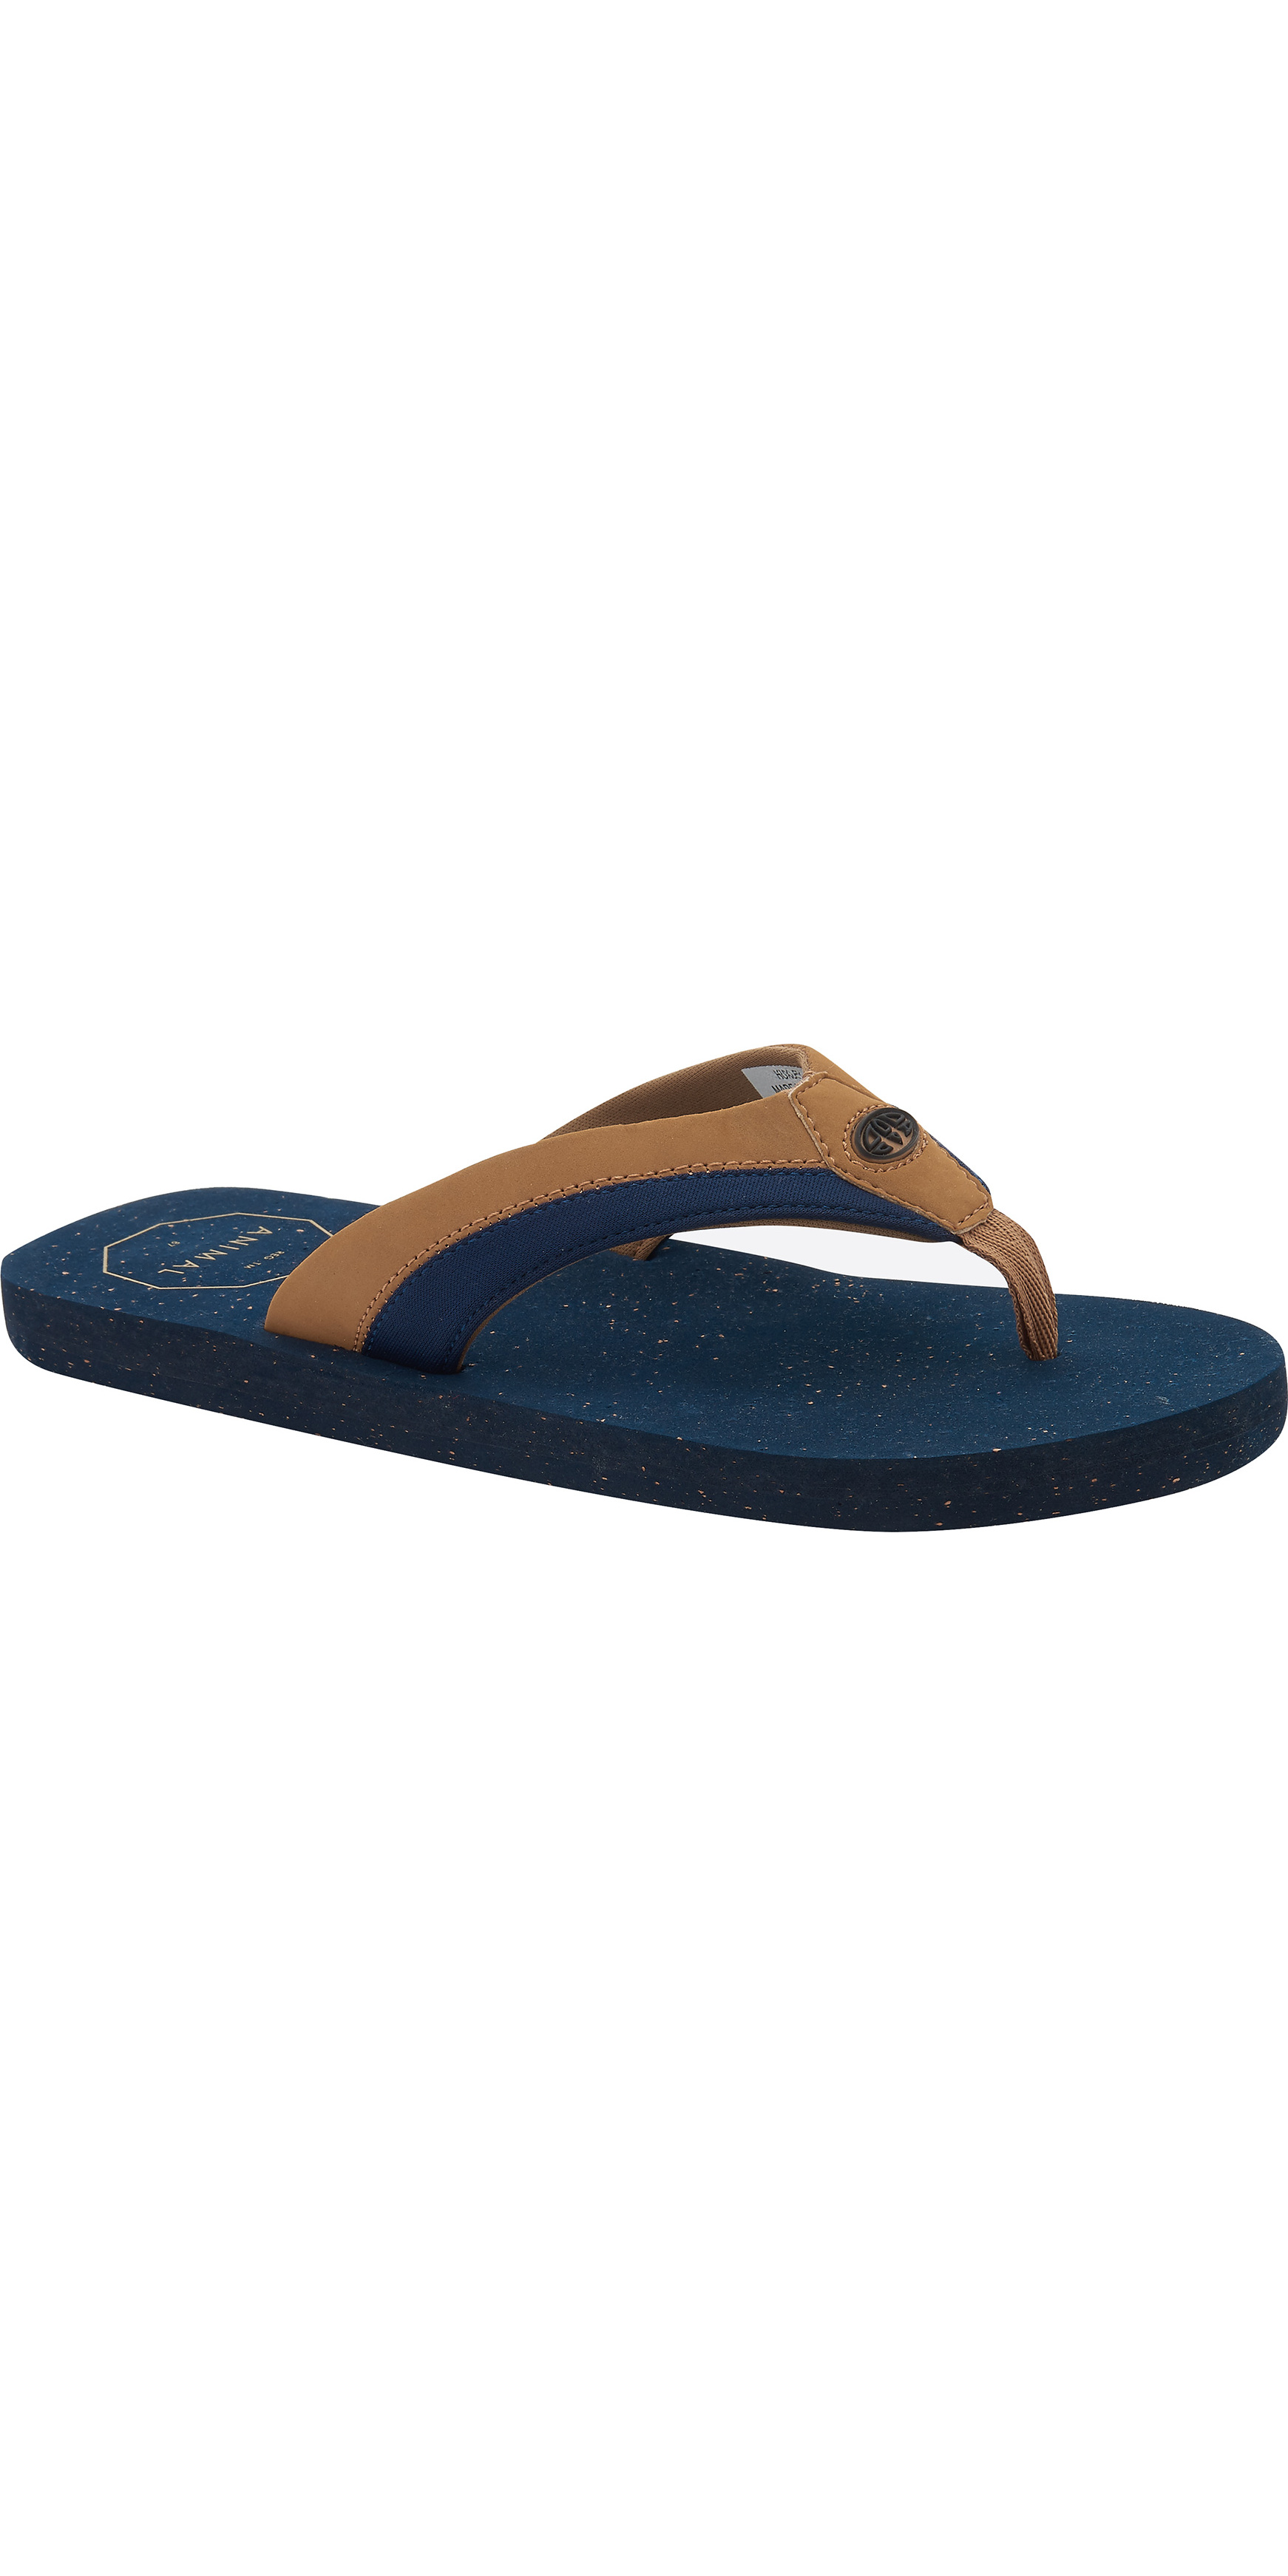 a1d1f2348 2019 Animal Mens Huxley Flip Flops Dark Navy Fm9sq012 - Flip Flops ...